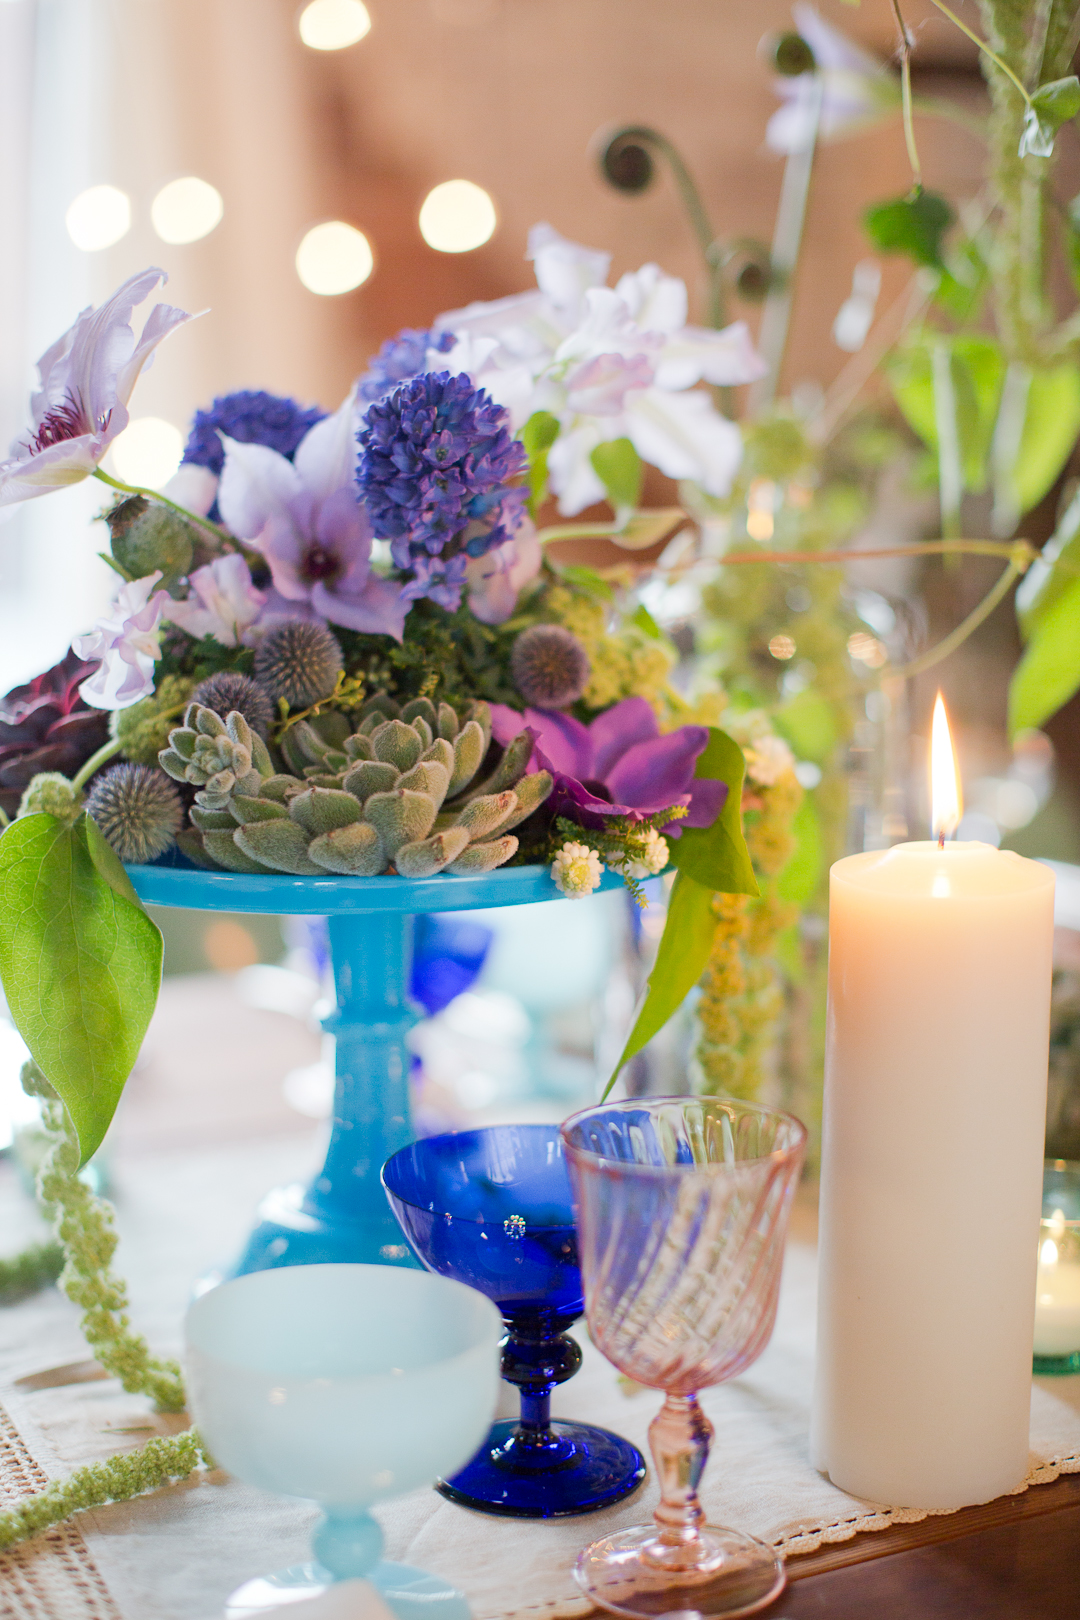 melissa kruse photography - bubbly bride styled shoot (the green building brooklyn) final web-415.jpg